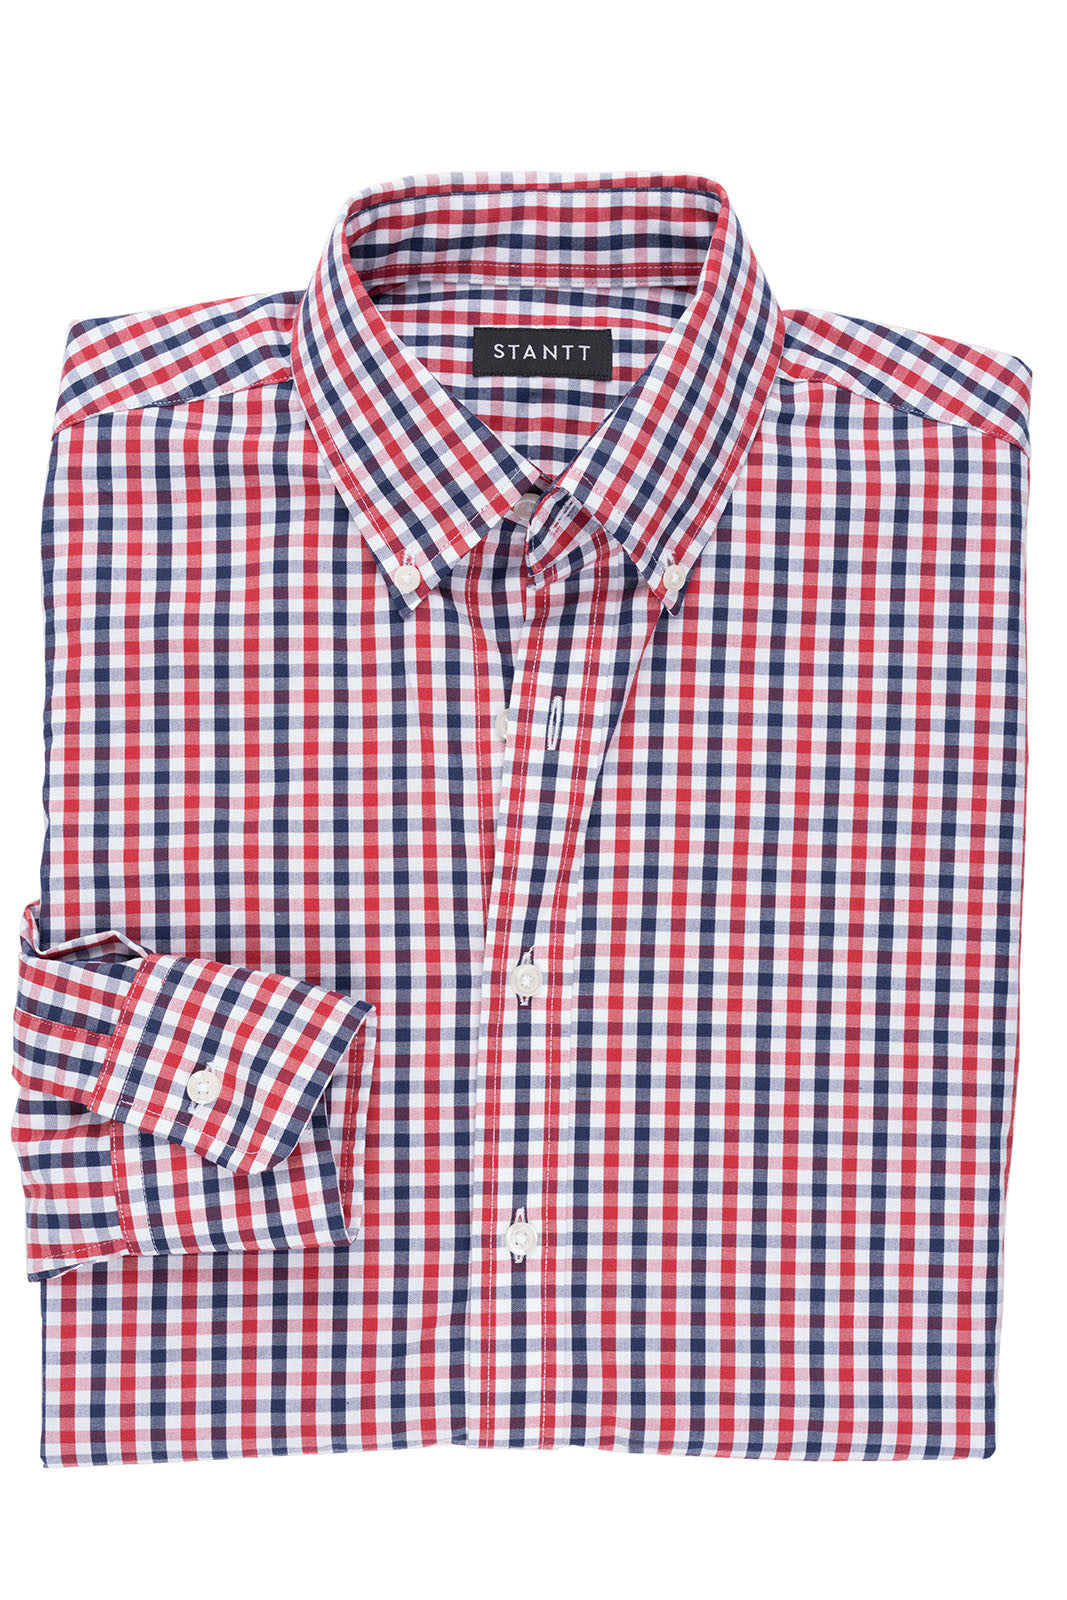 Cardinal Red and Navy Gingham: Button-Down Collar, Barrel Cuff